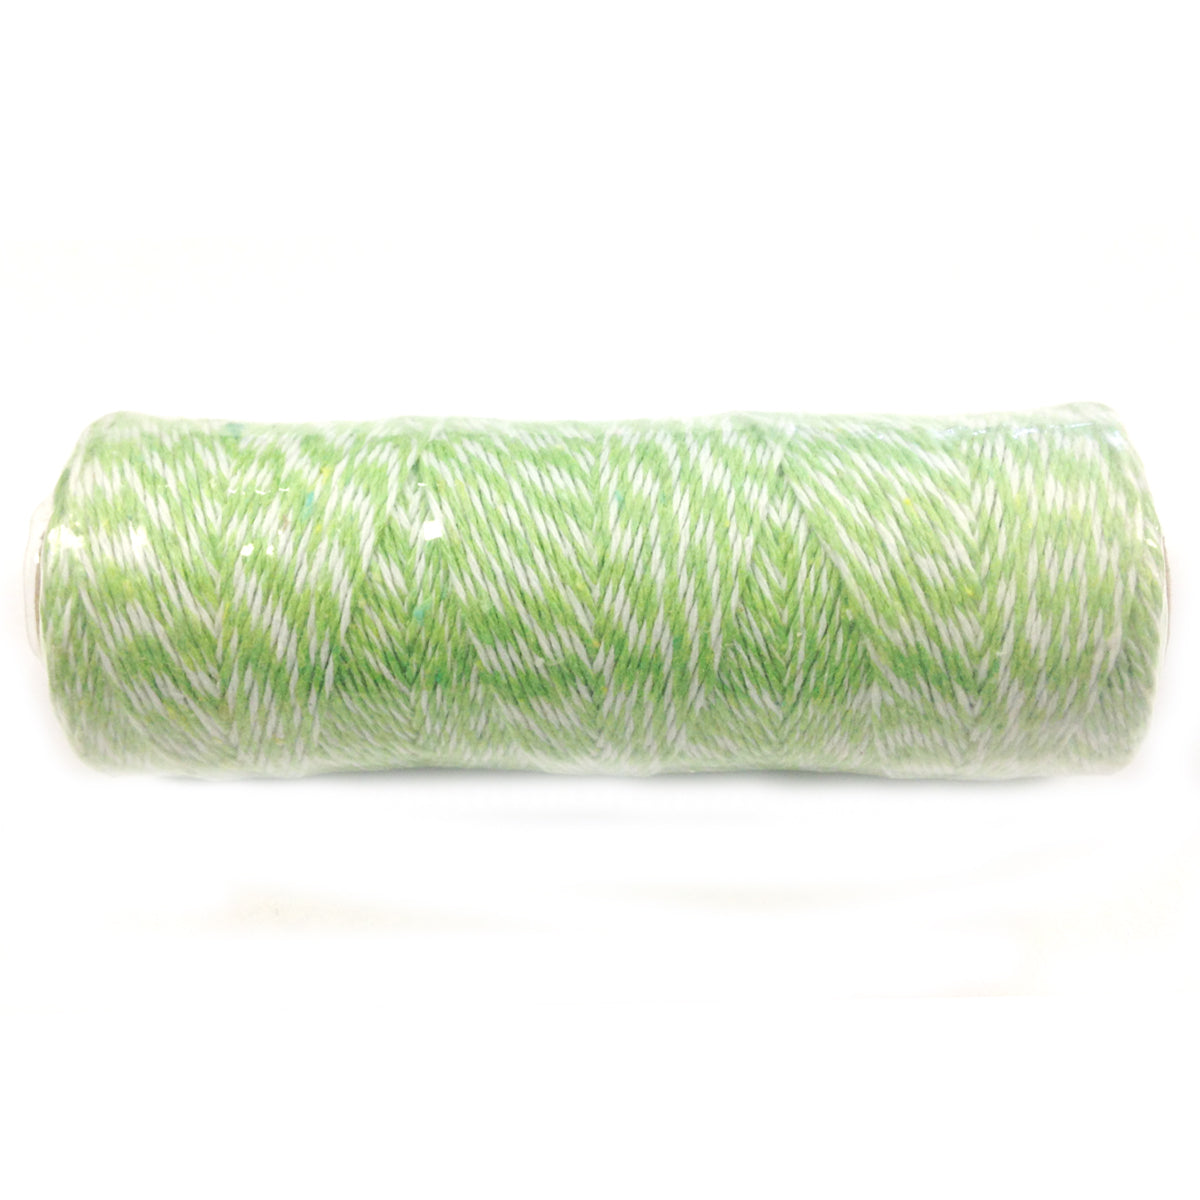 Wrapables Cotton Baker's Twine 4ply 110 Yard